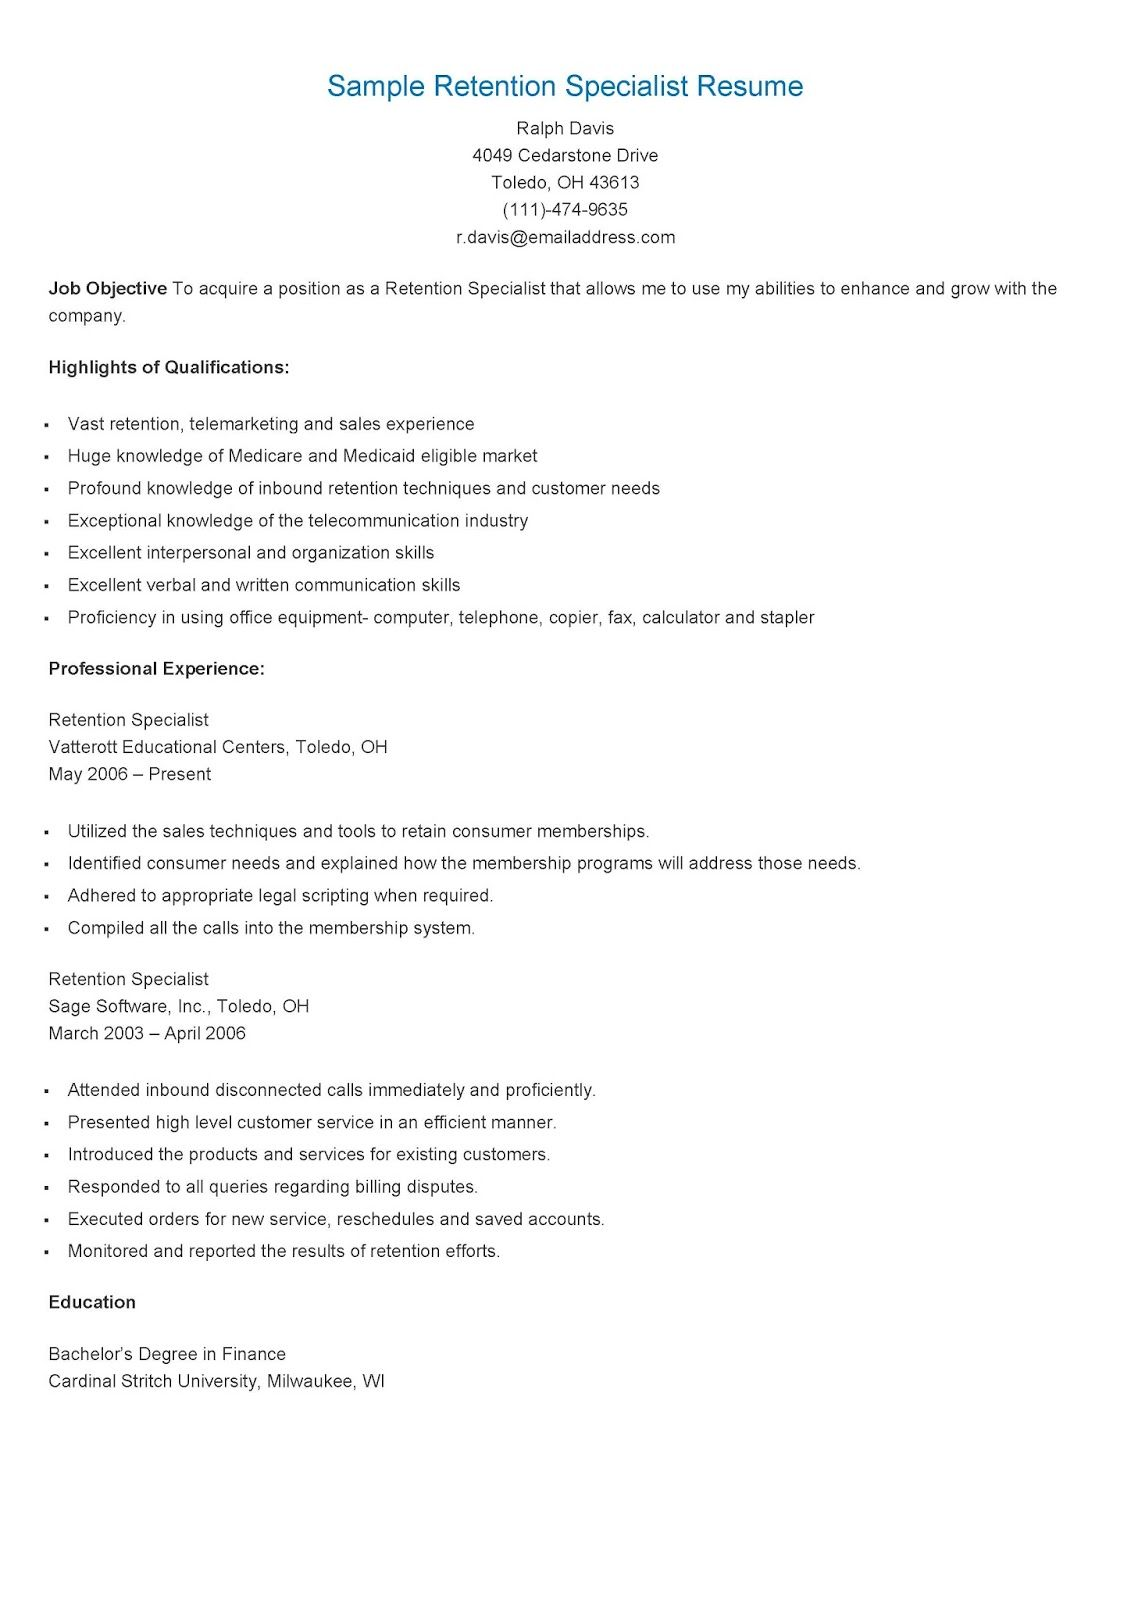 sample retention specialist resume resame pinterest